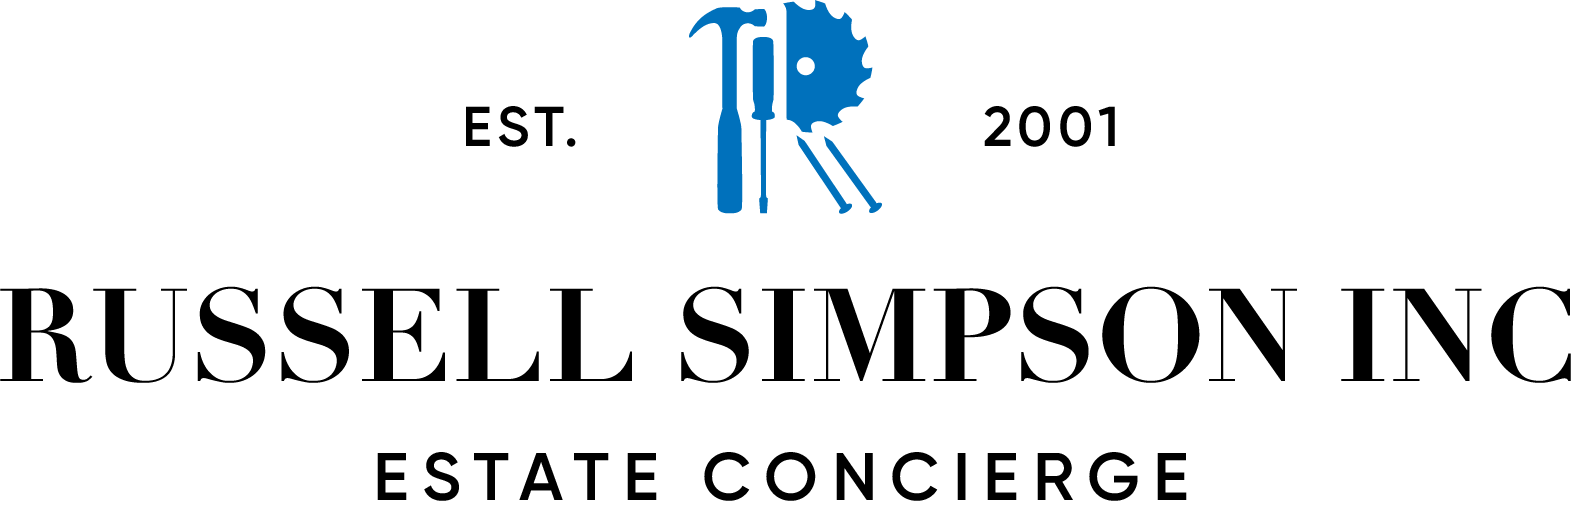 Russell Simpson Inc_Estate Concierge_Logotype.png